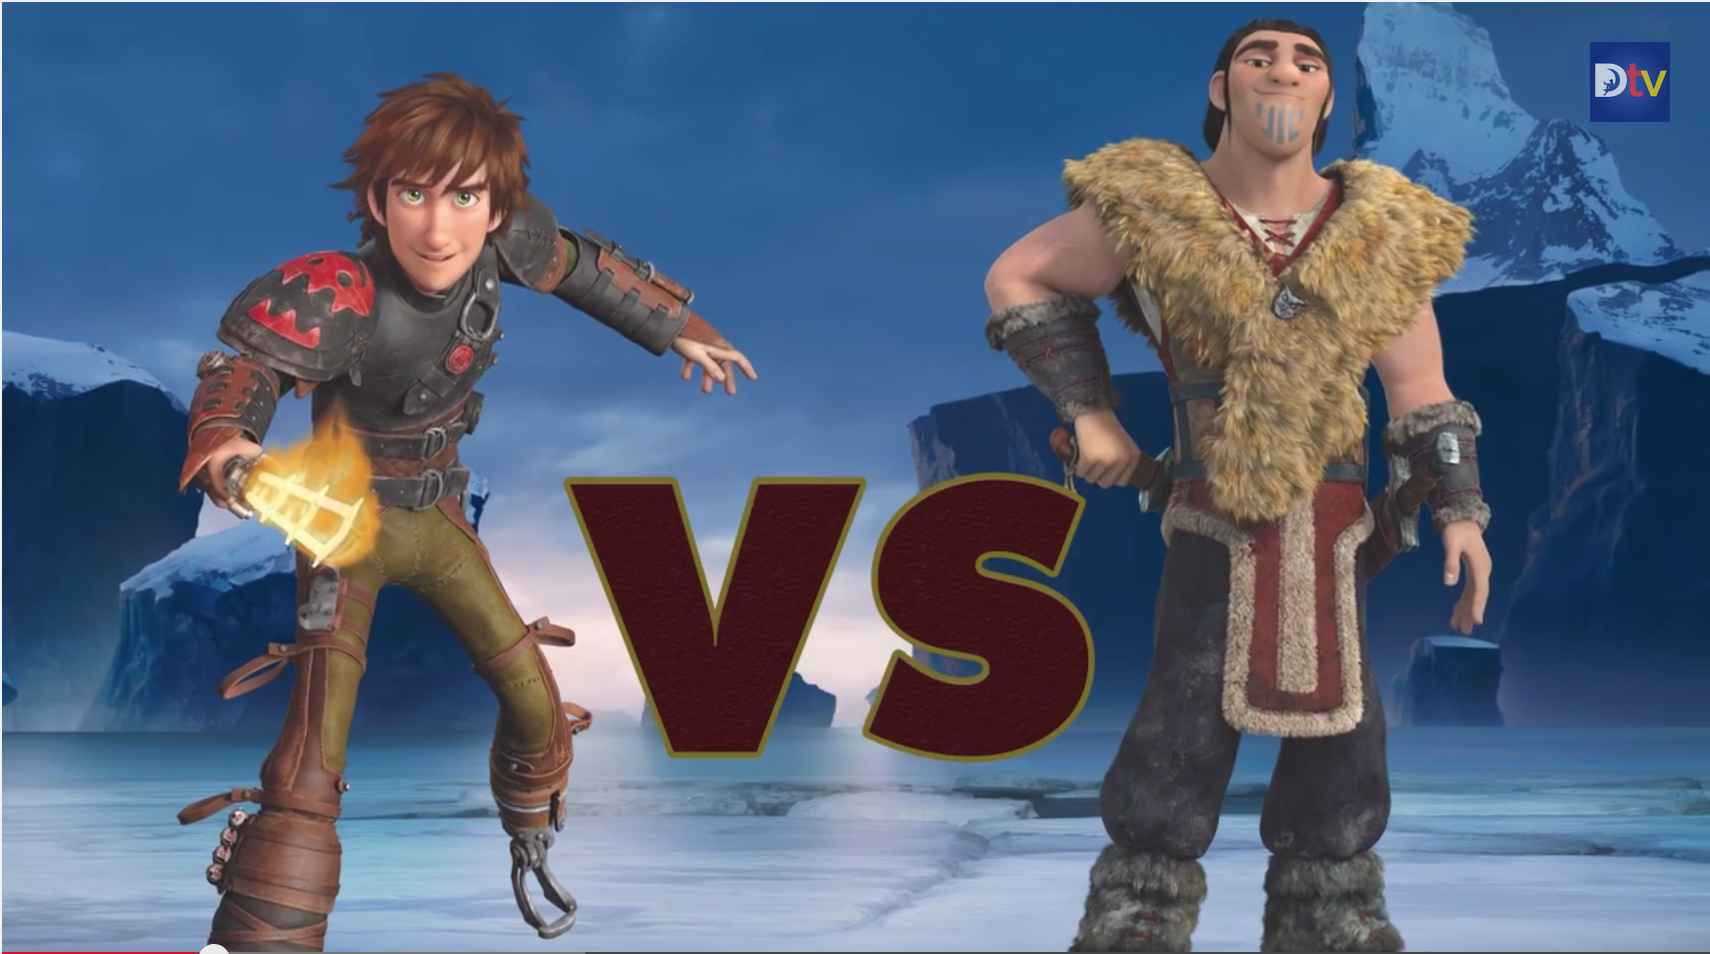 Deblois Nixes How To Train Your Dragon 4 Plus A Deleted Scene From Httyd 2